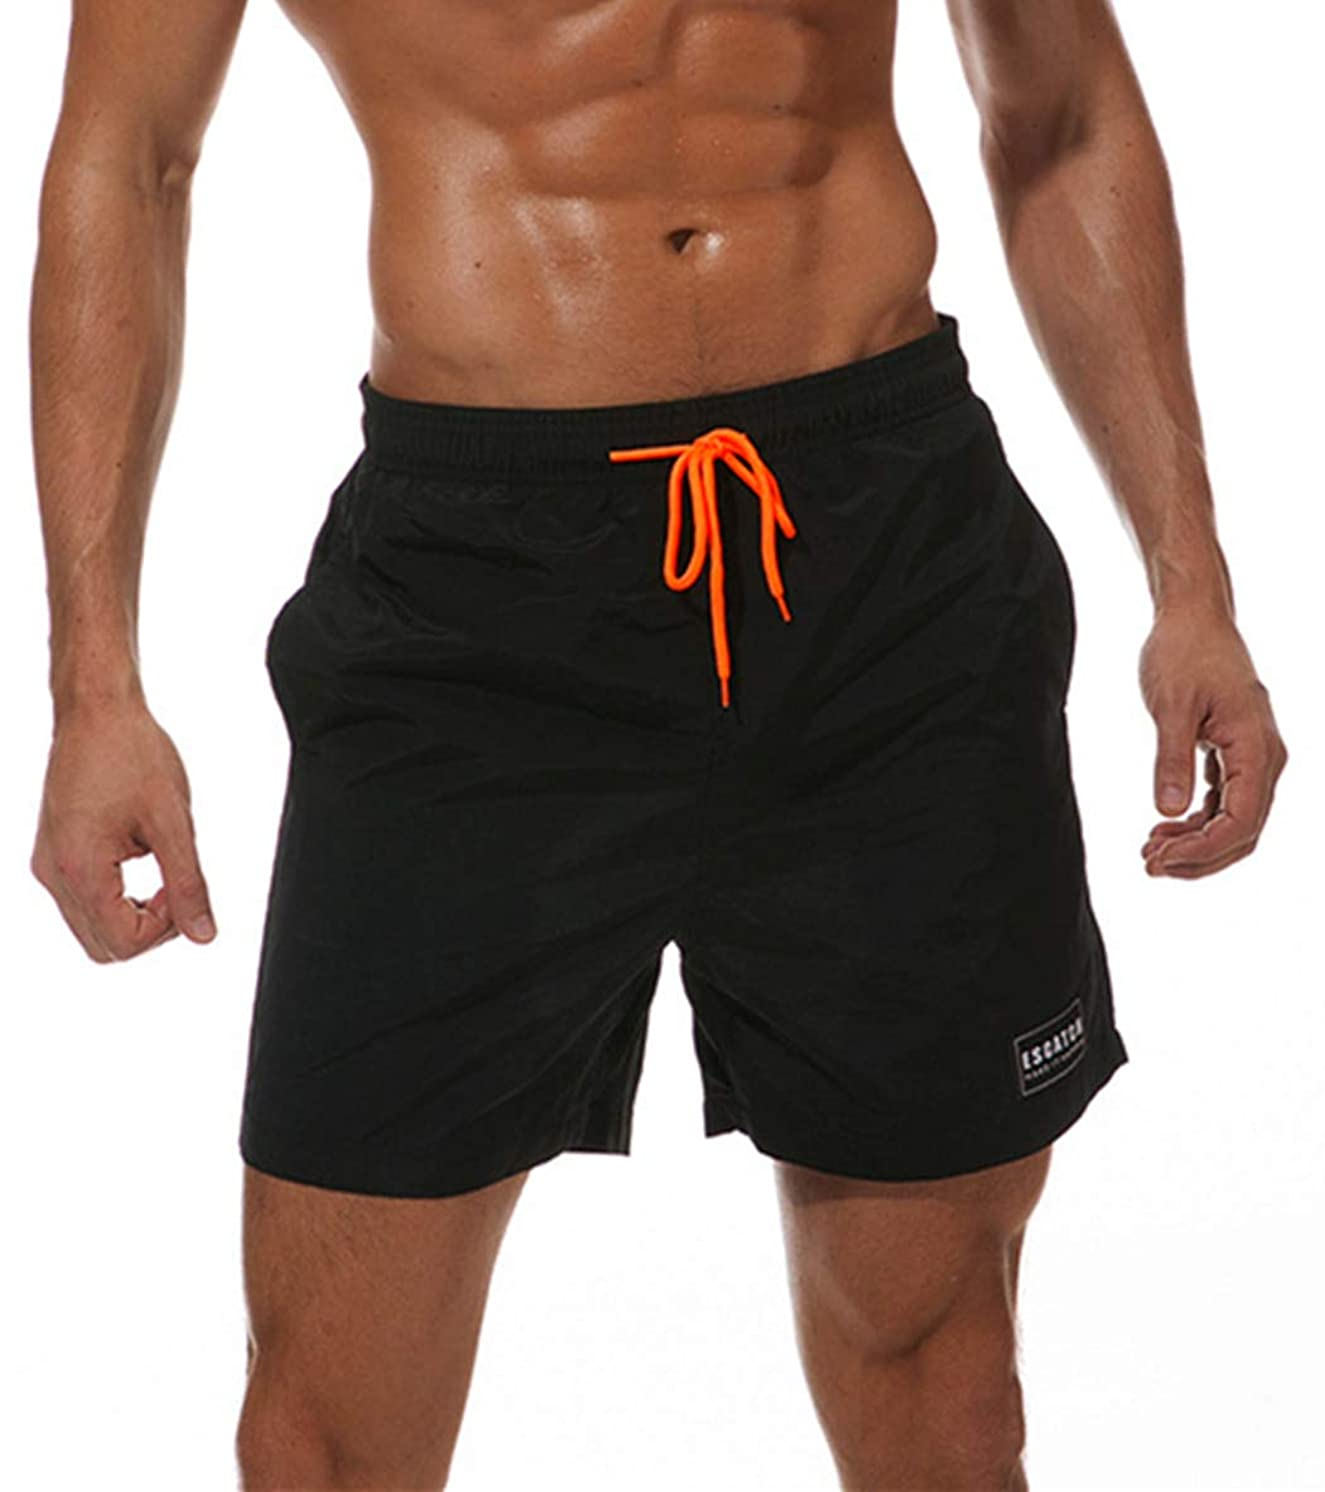 WESIZAR Swimming Trunks Men Surfing Waterproof Beach Shorts with Pockets